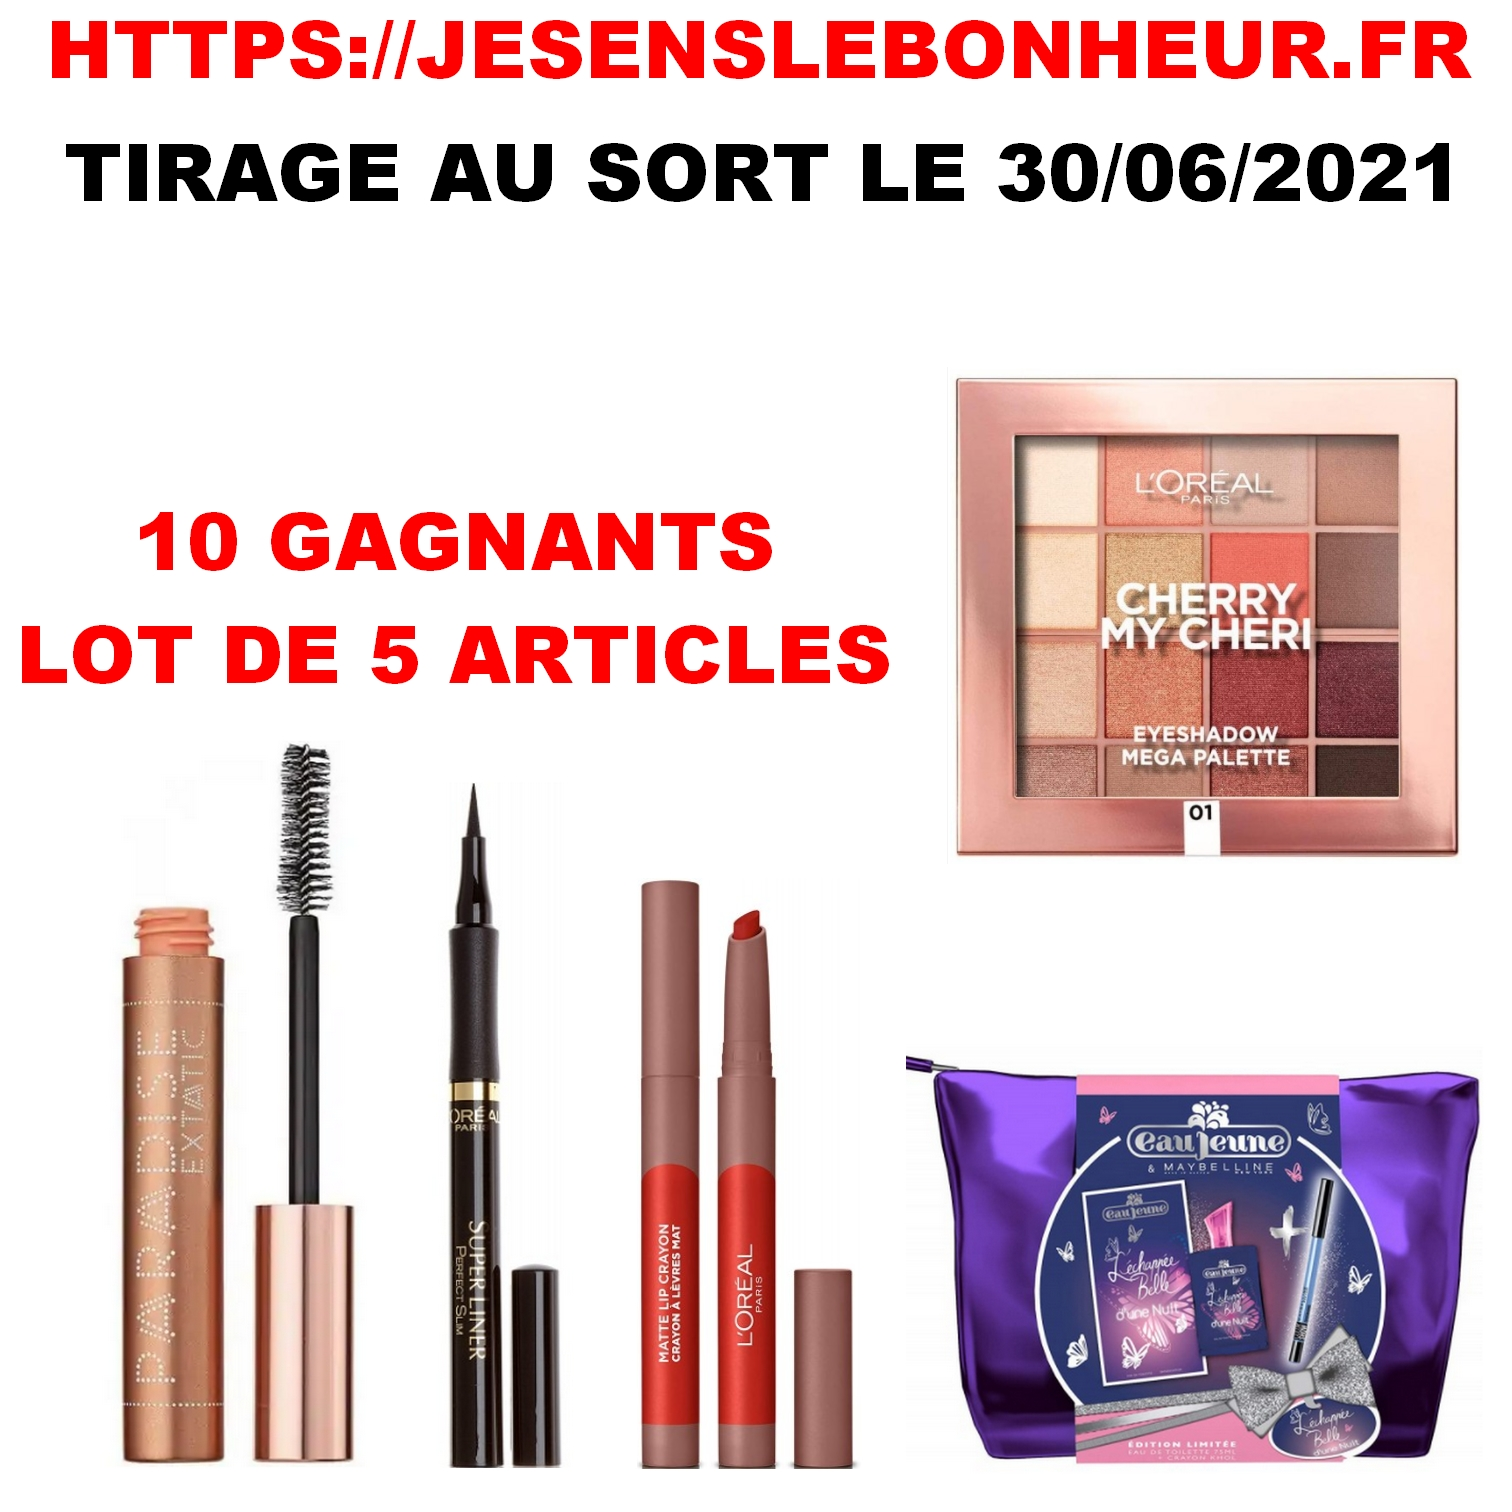 1 LOT DE 5 ARTICLES - 10 GAGNANTS - TIRAGE AU SORT LE 30/06/2021